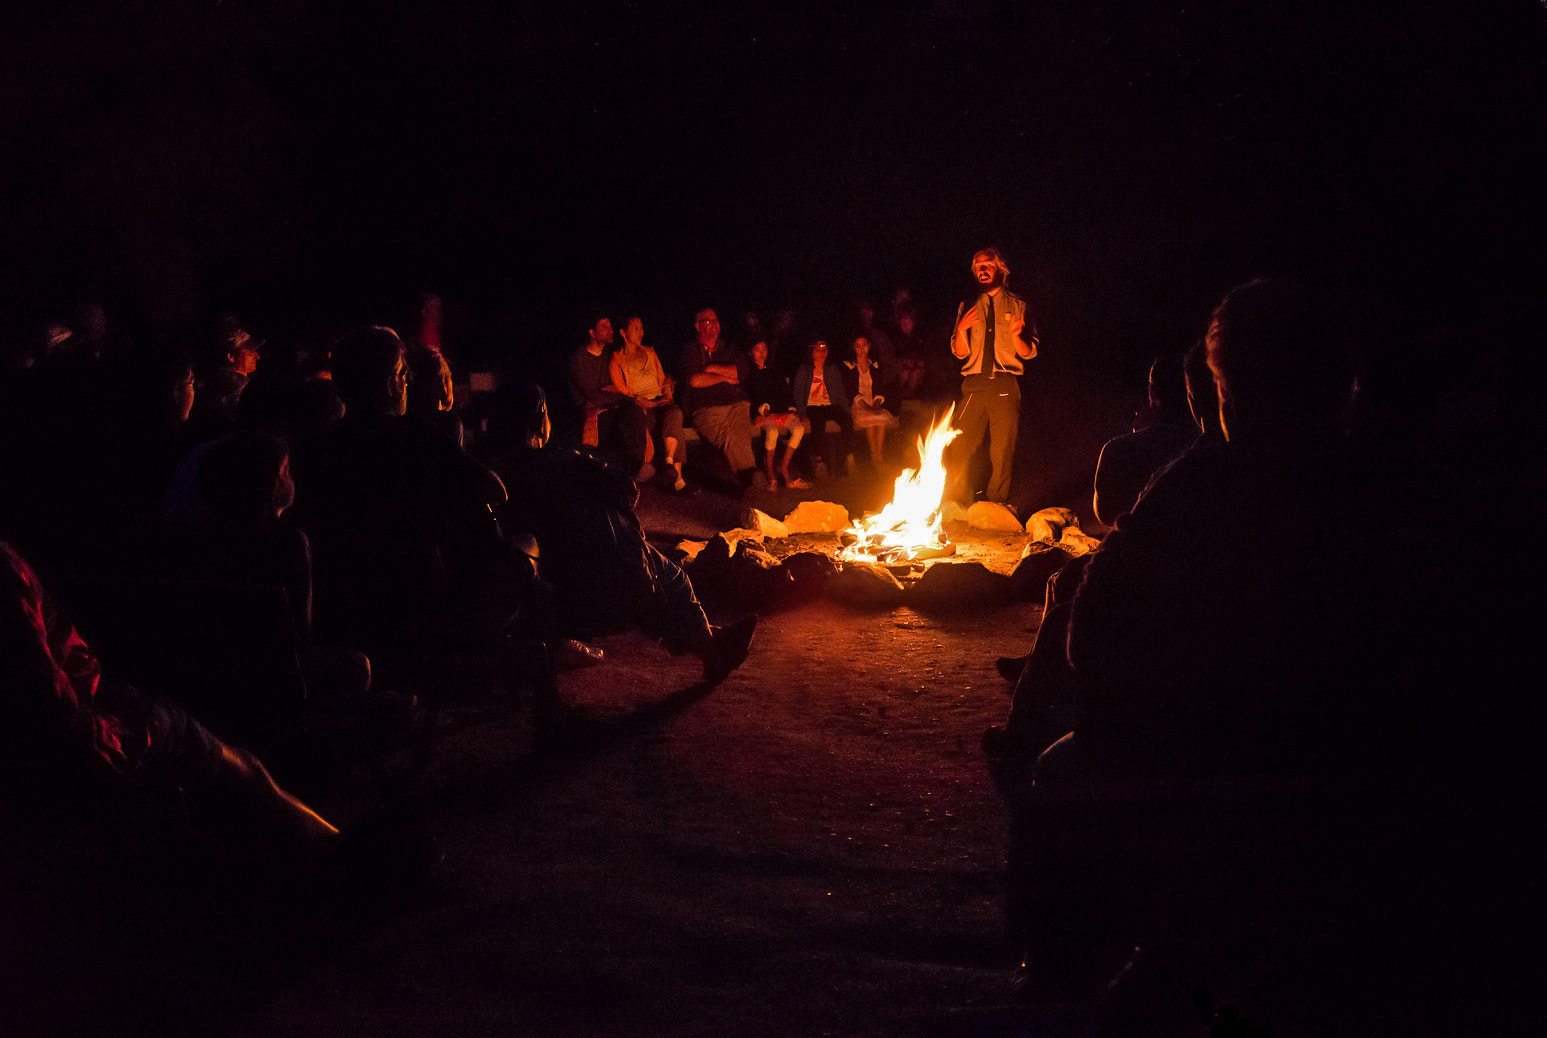 Photograph Campfire Chat by Greg Padgett on 500px